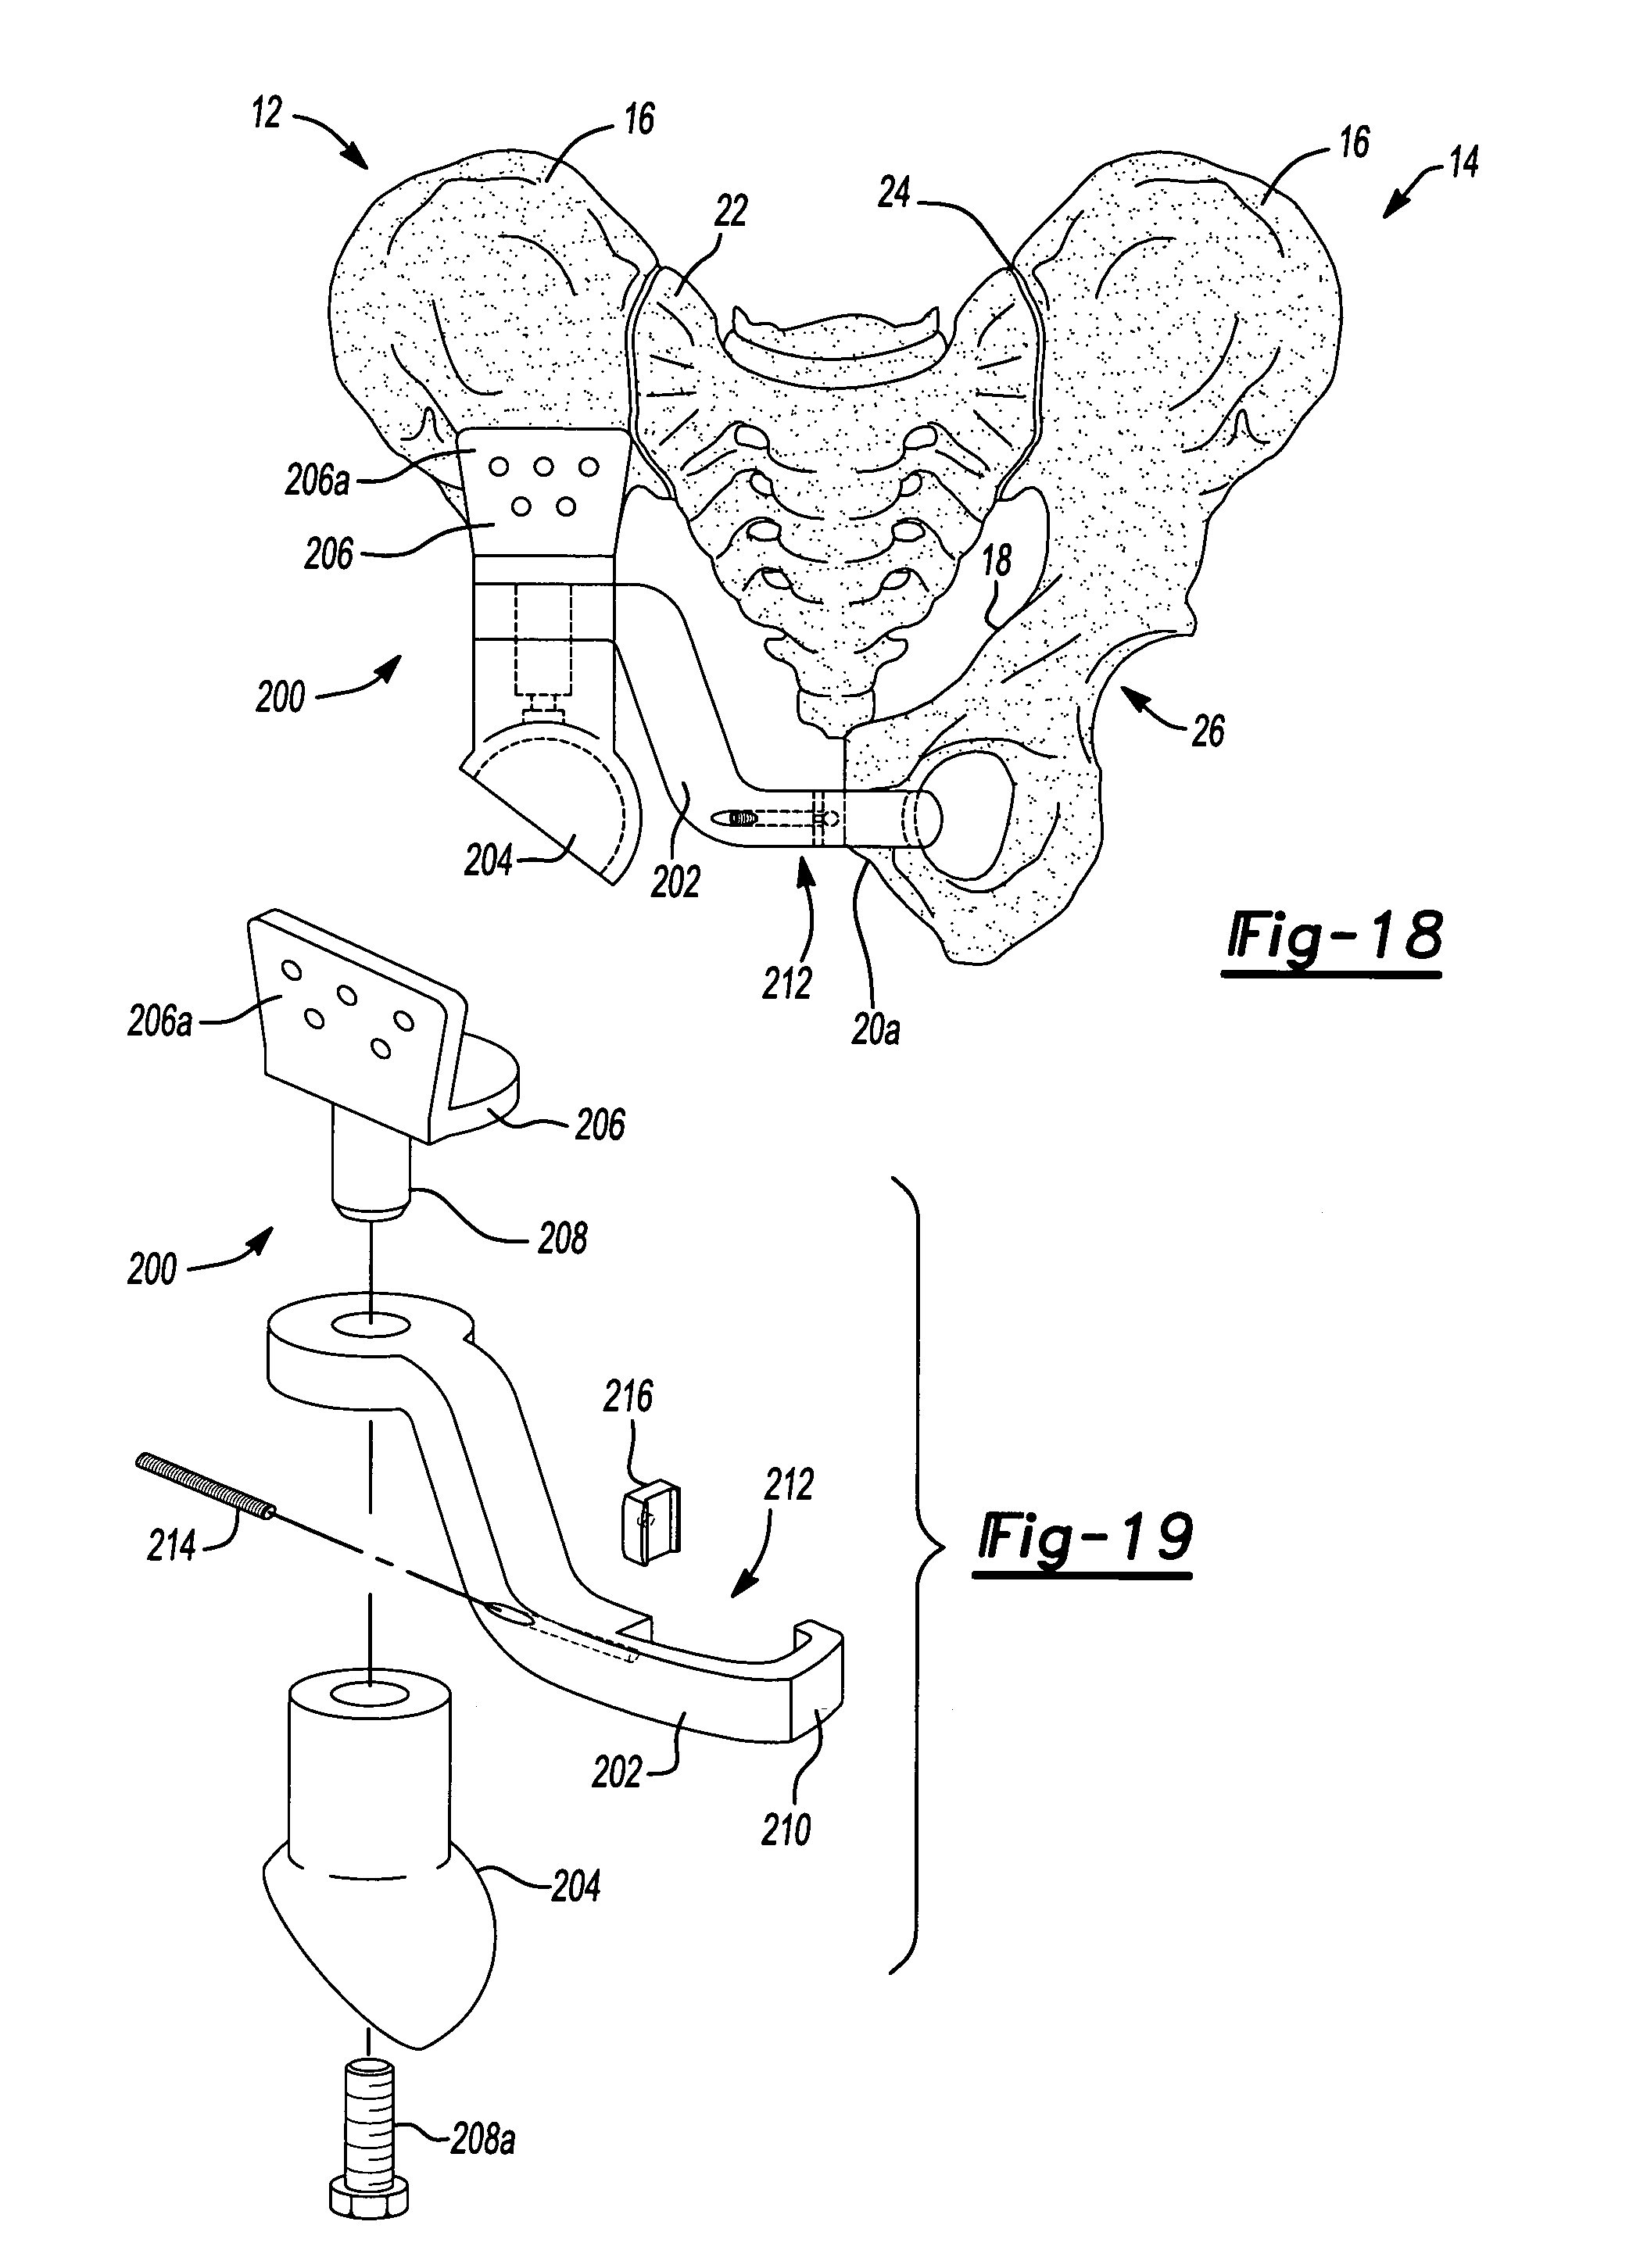 US7520902 together with US7670383 besides Ot Transfers in addition Bobath Technique For Stroke Patients Pdf ls likewise Replacement. on hemi hip replacement